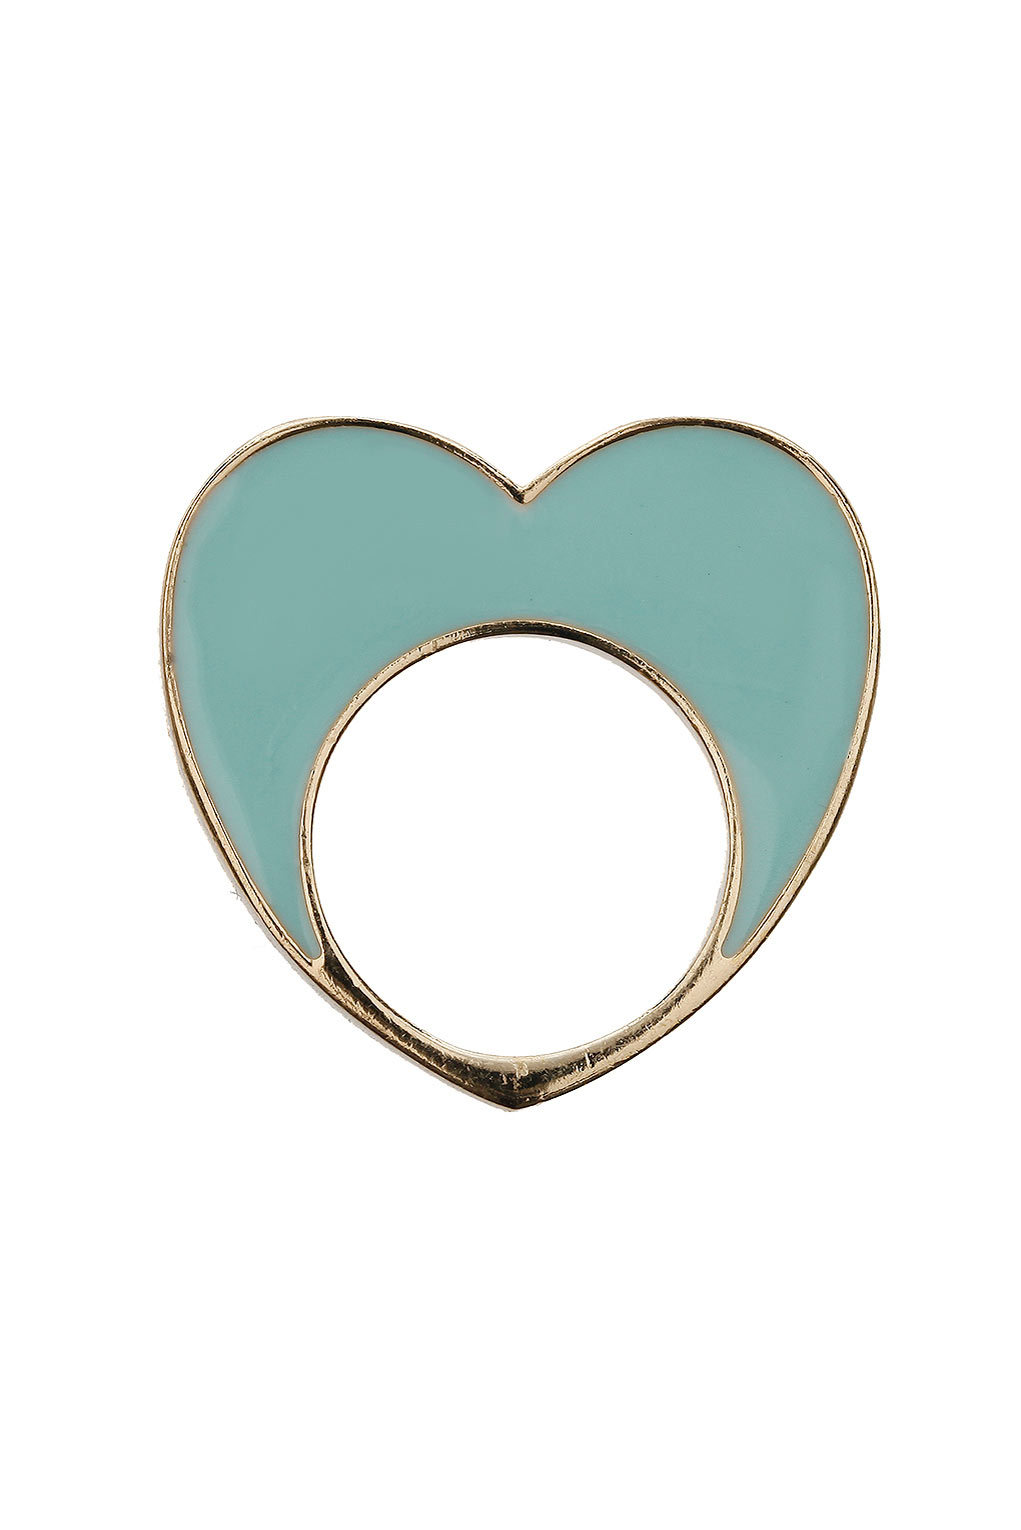 Enamel Heart ring available here!